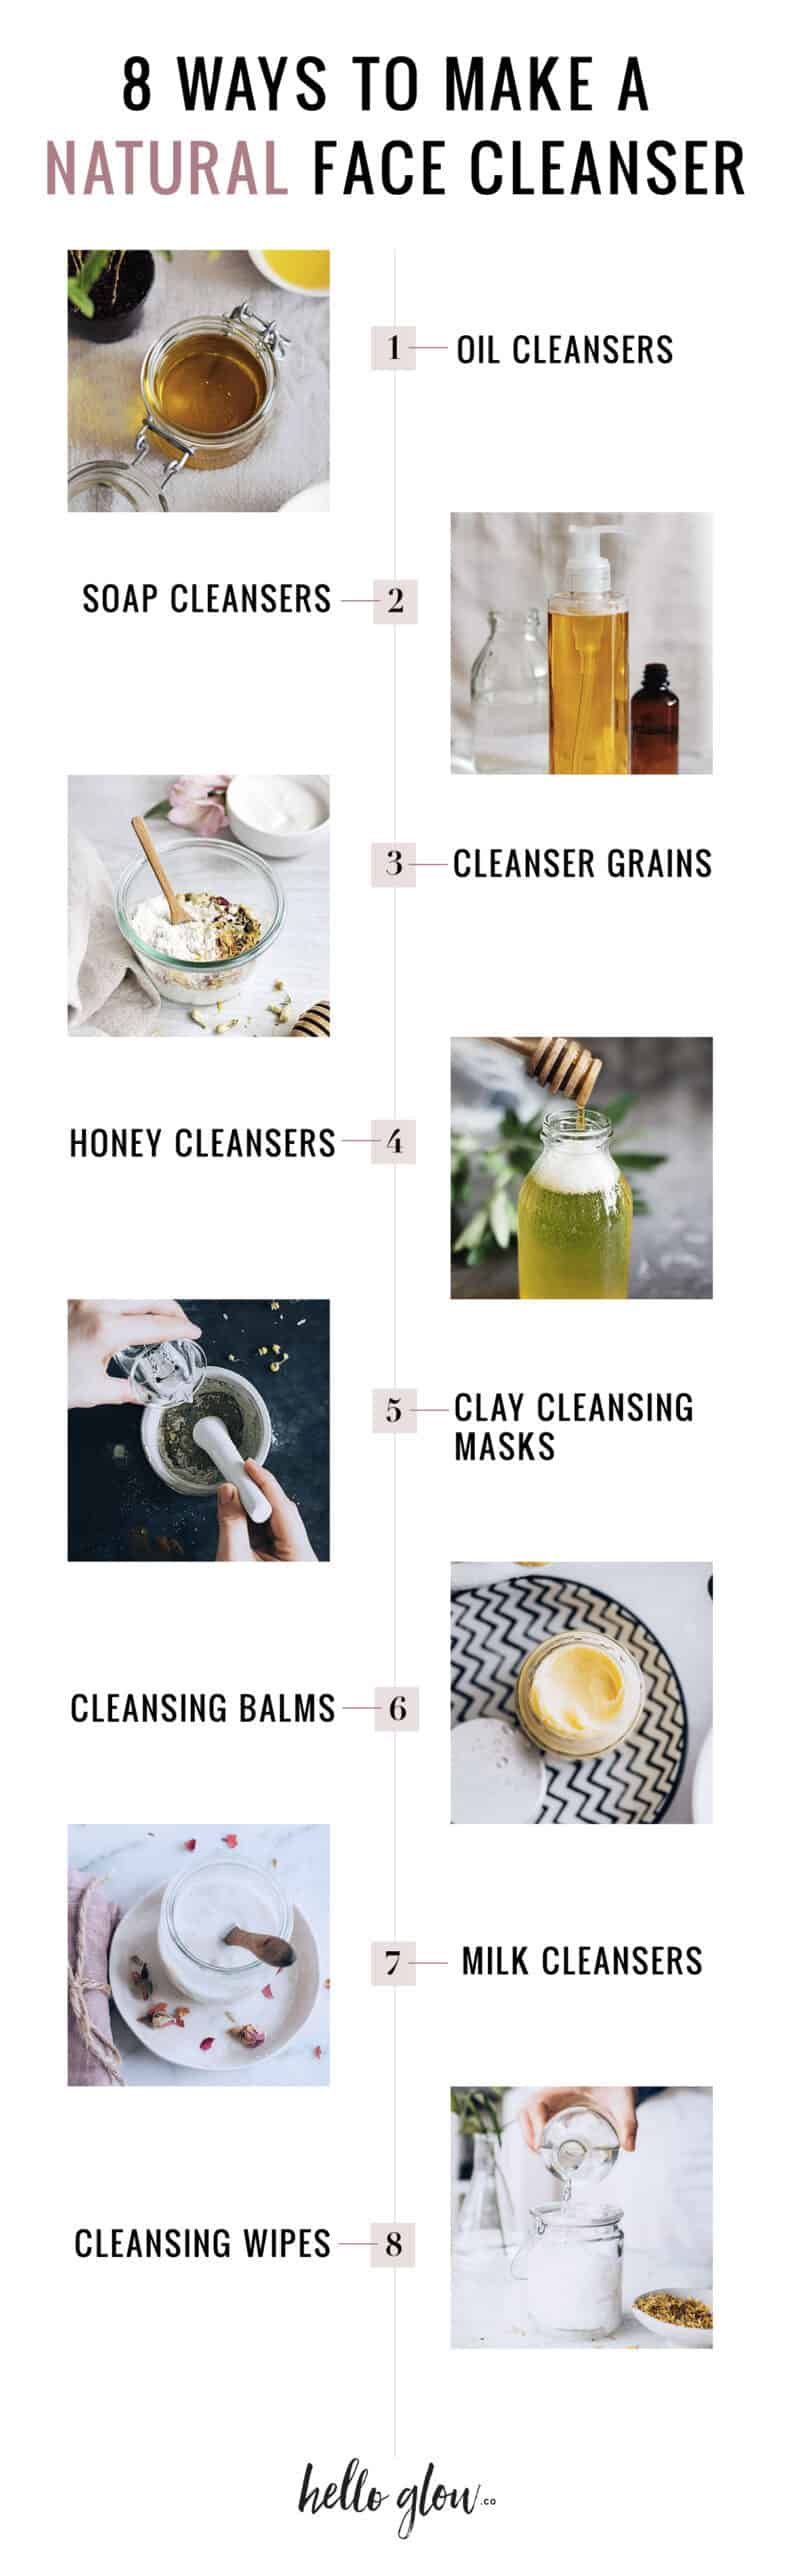 8 Ways to Make a Natural Face Cleanser